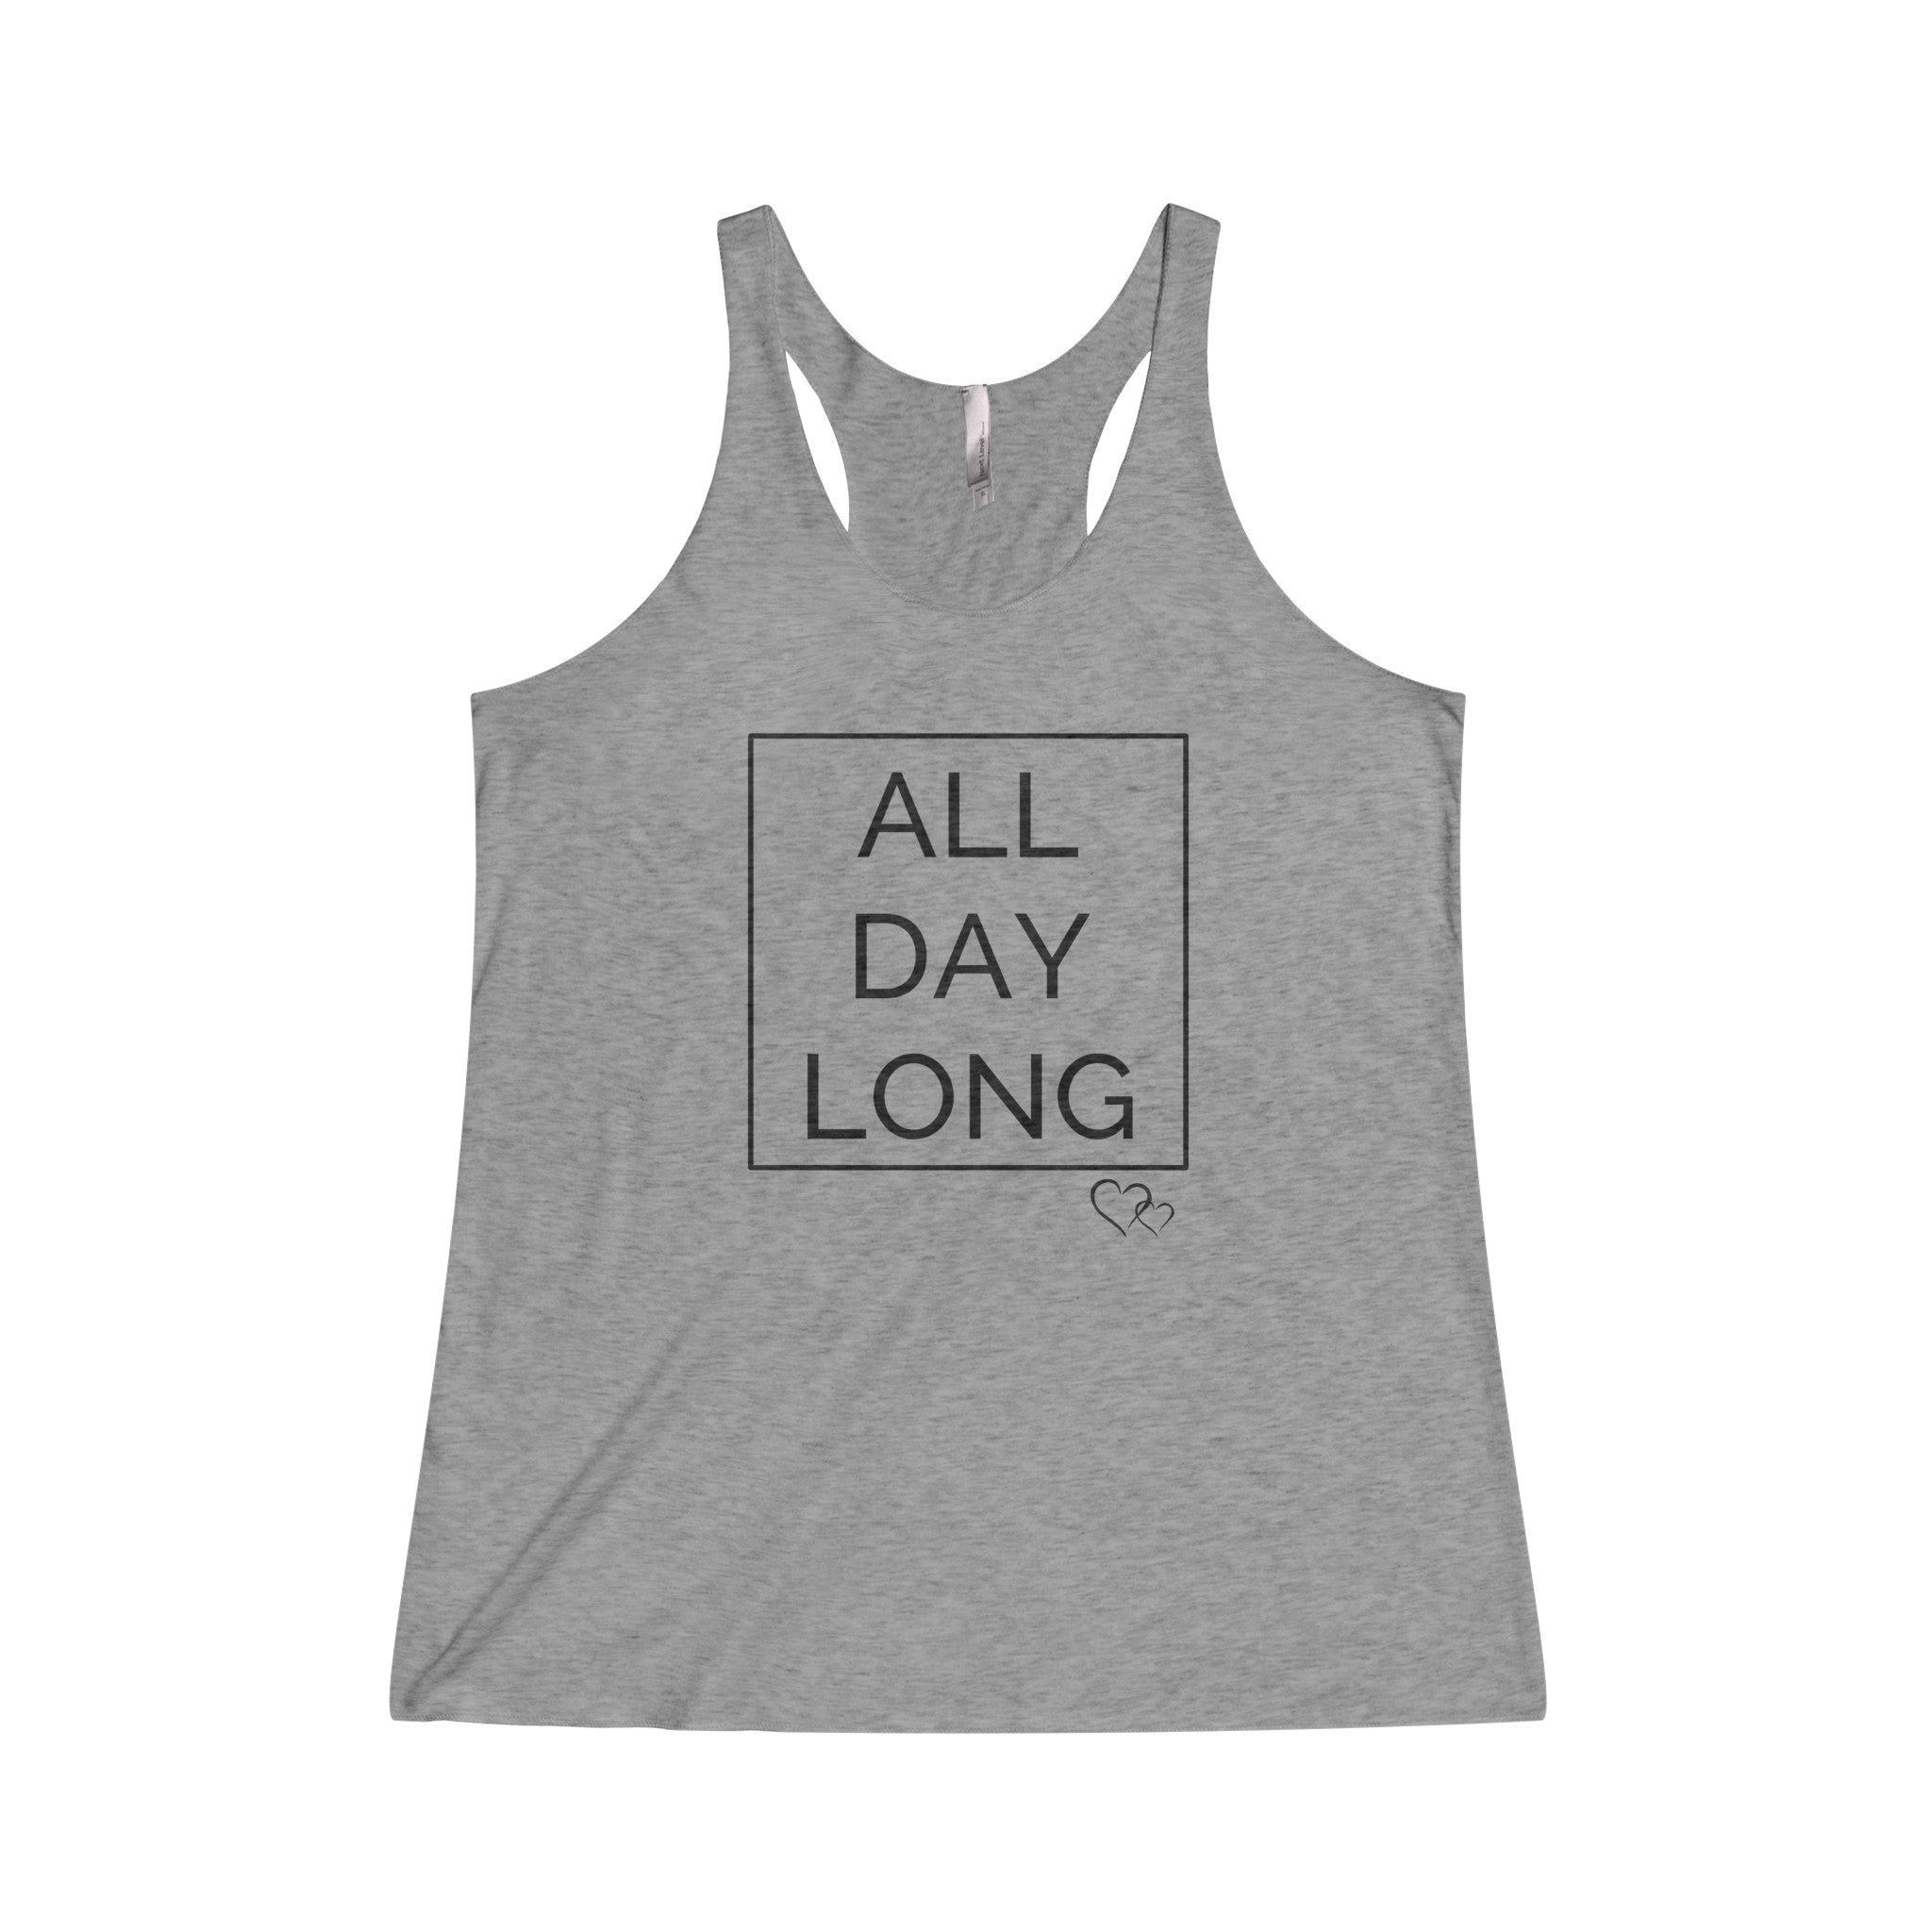 ALL DAY LONG - Racerback Tank